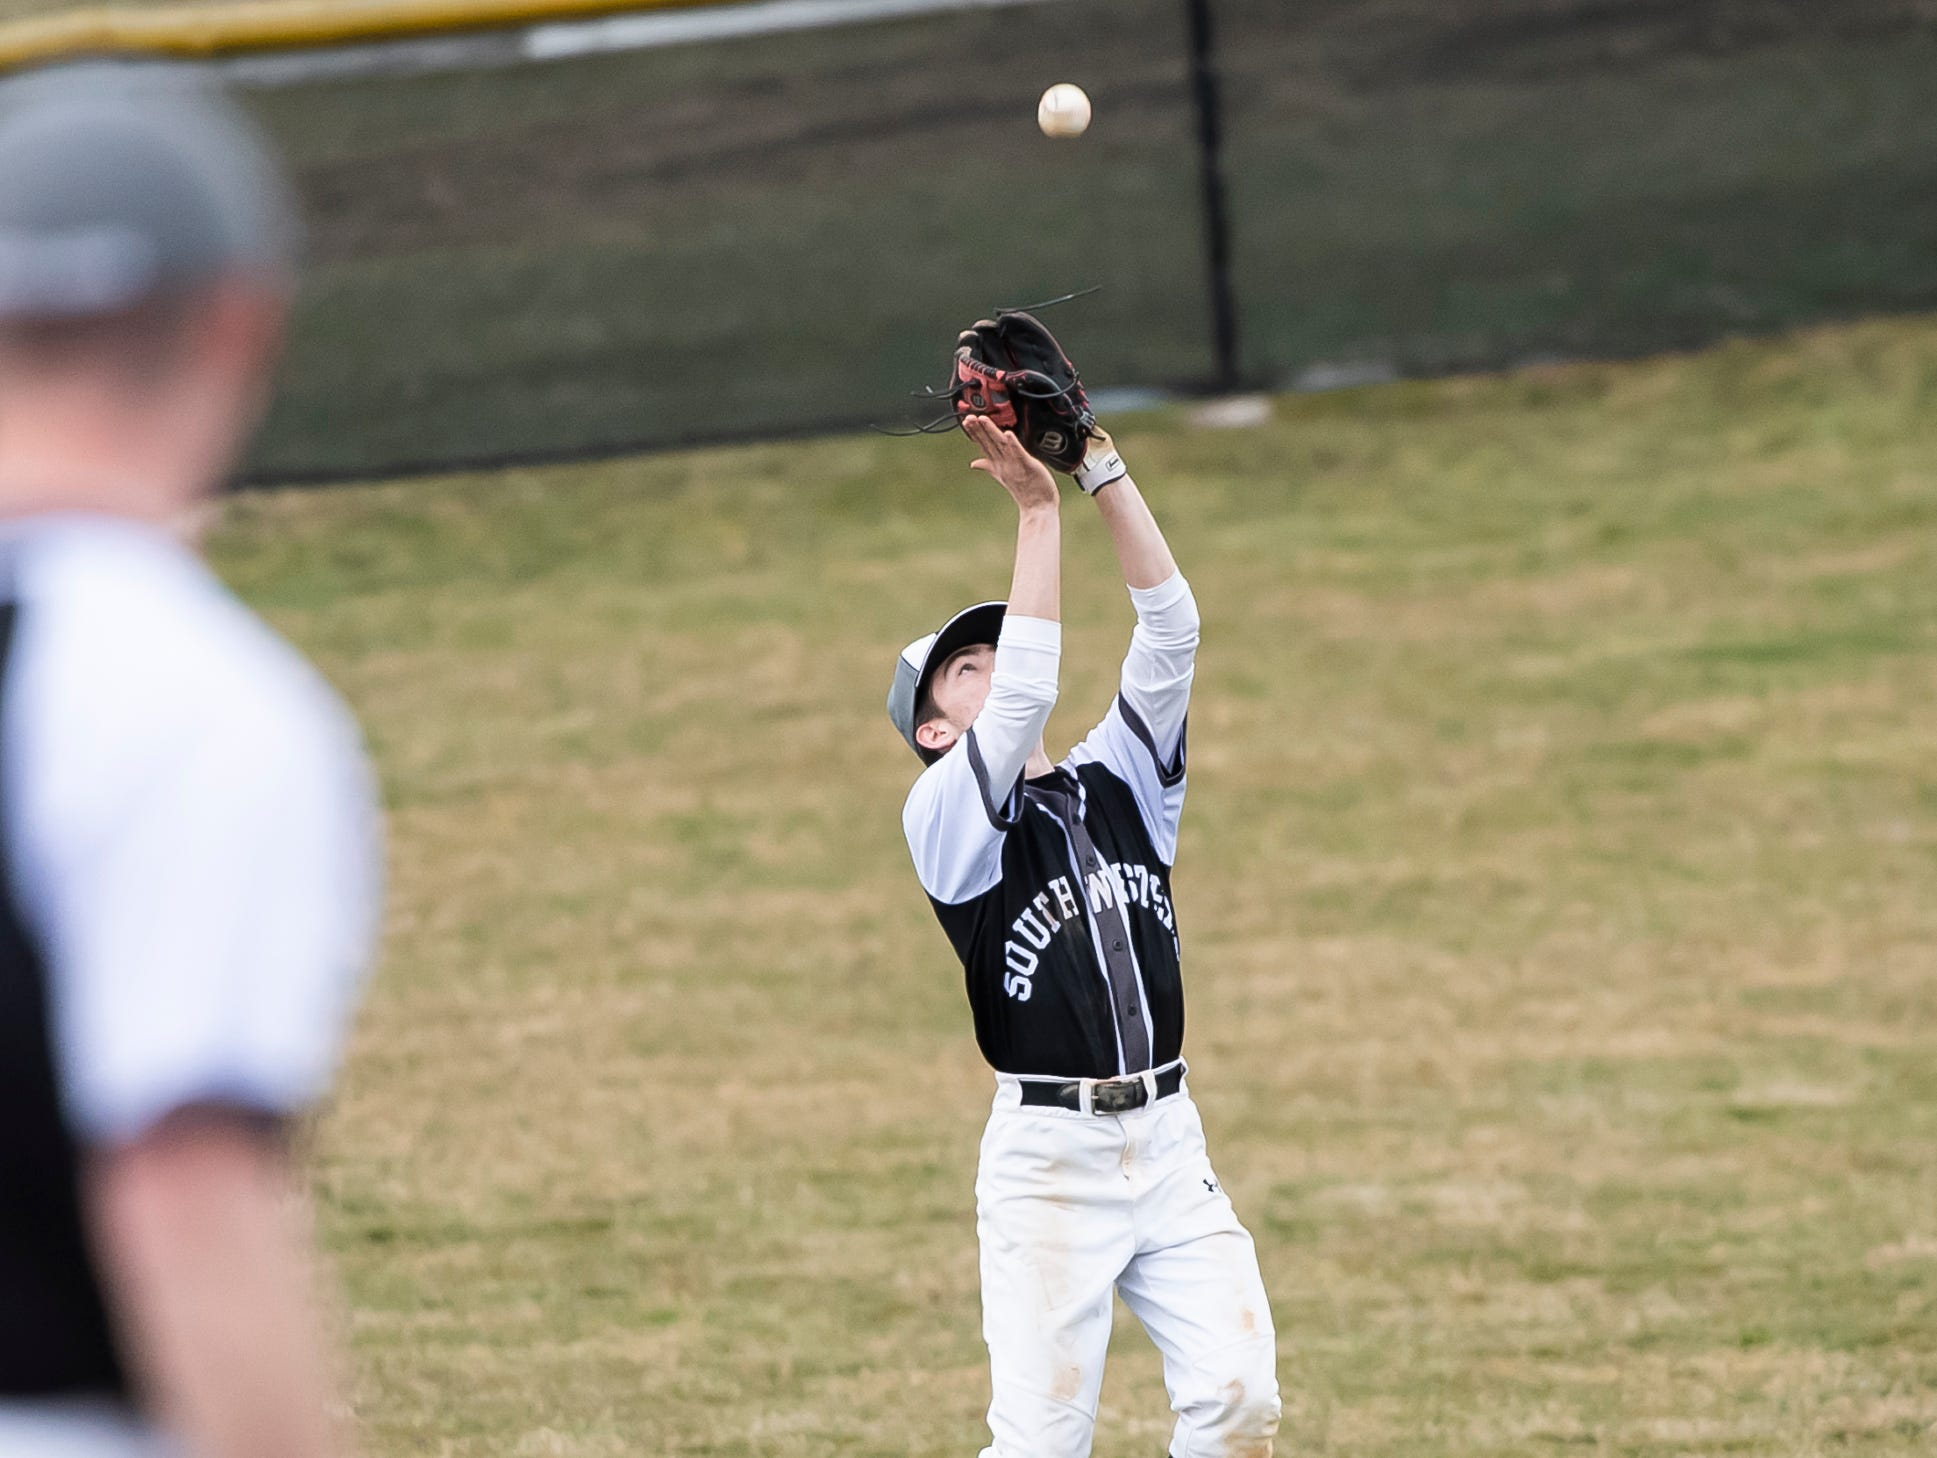 South Western's Alex Klingler prepares to catch an infield fly during play against Carlisle in Hanover on Friday, March 29, 2019. The Mustangs won 11-9.